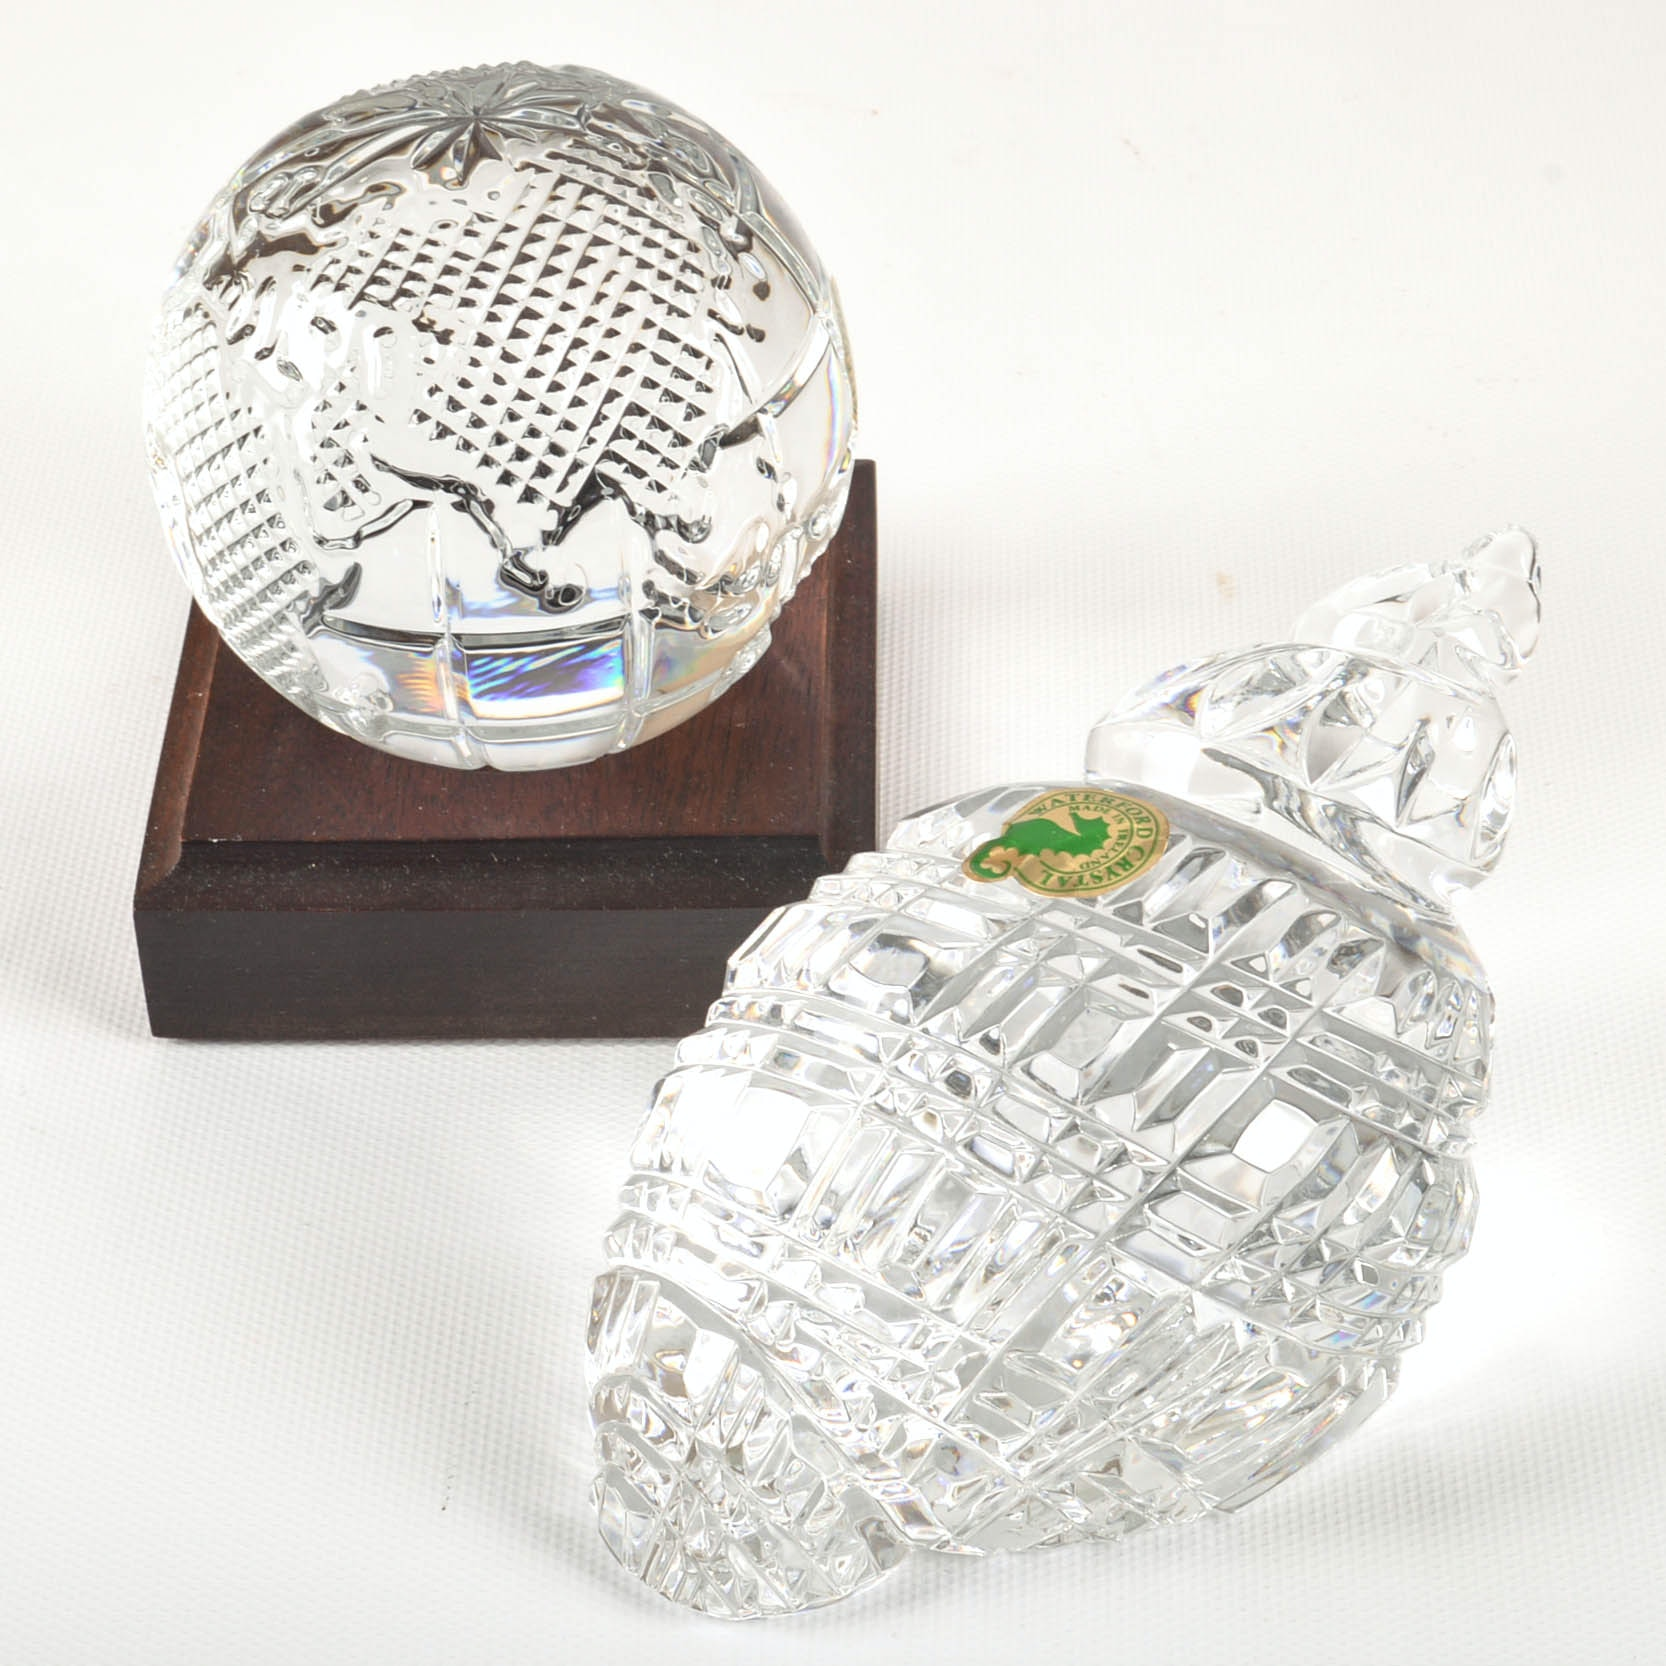 Waterford Crystal Decor